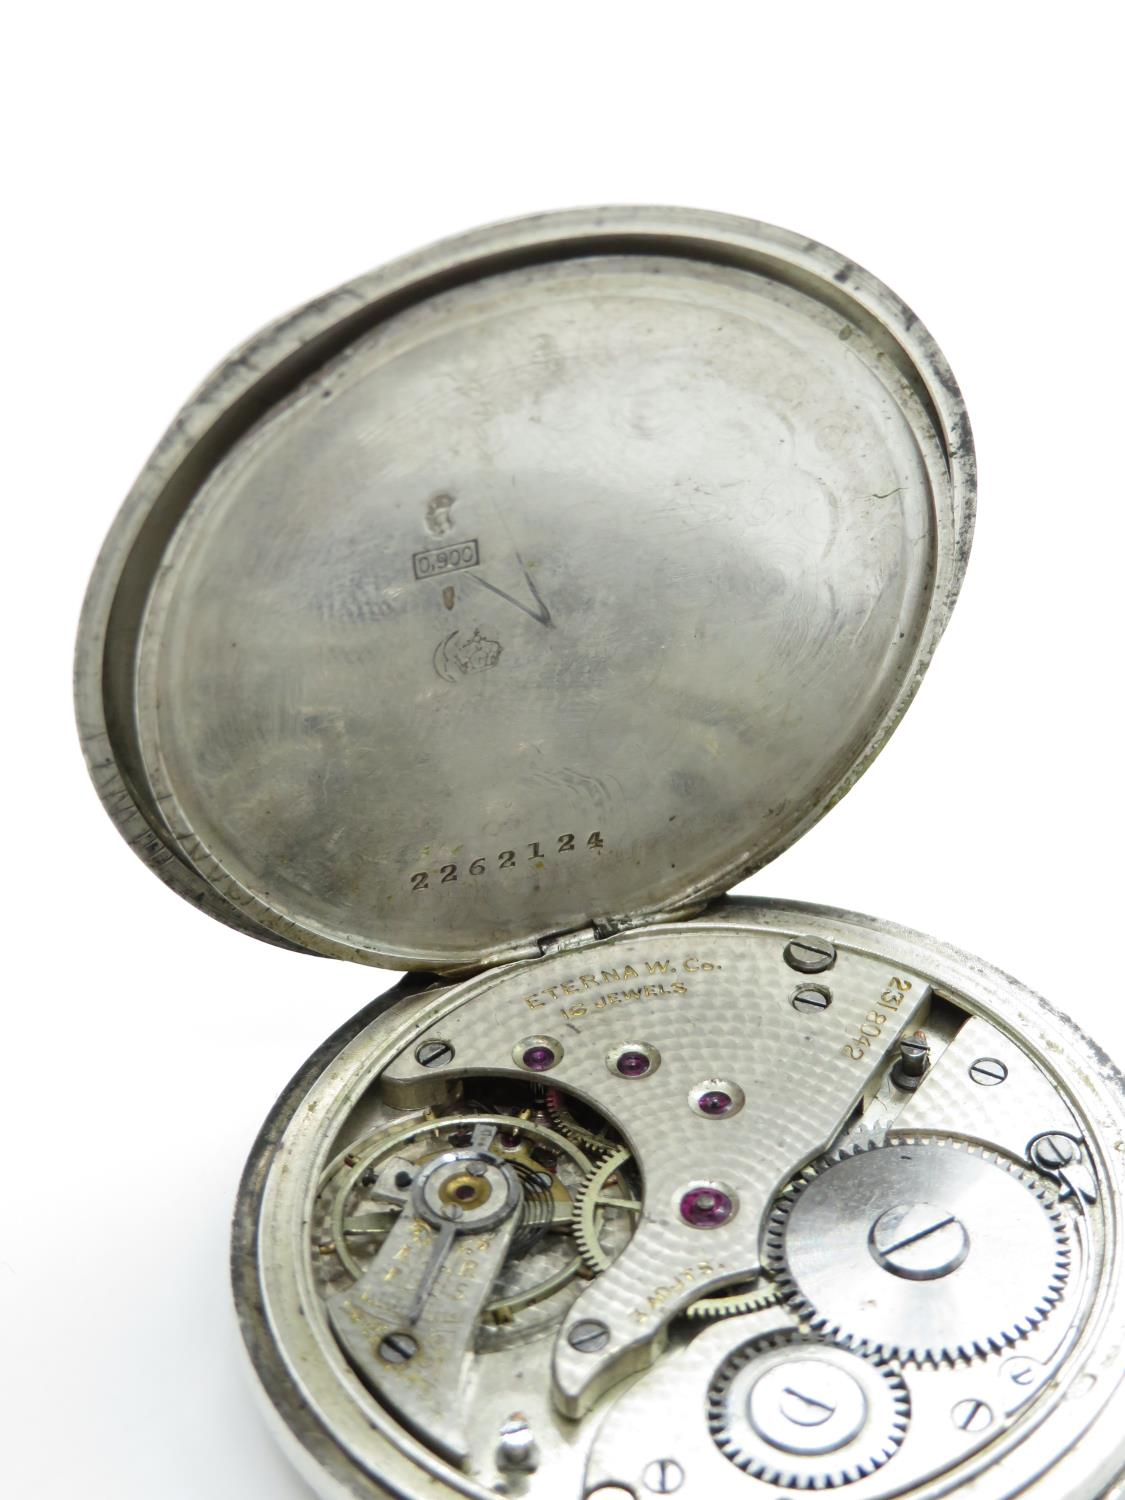 900 silver cased eterna gents vintage open face pocket watch hand wind / 16 jewels - Image 6 of 7